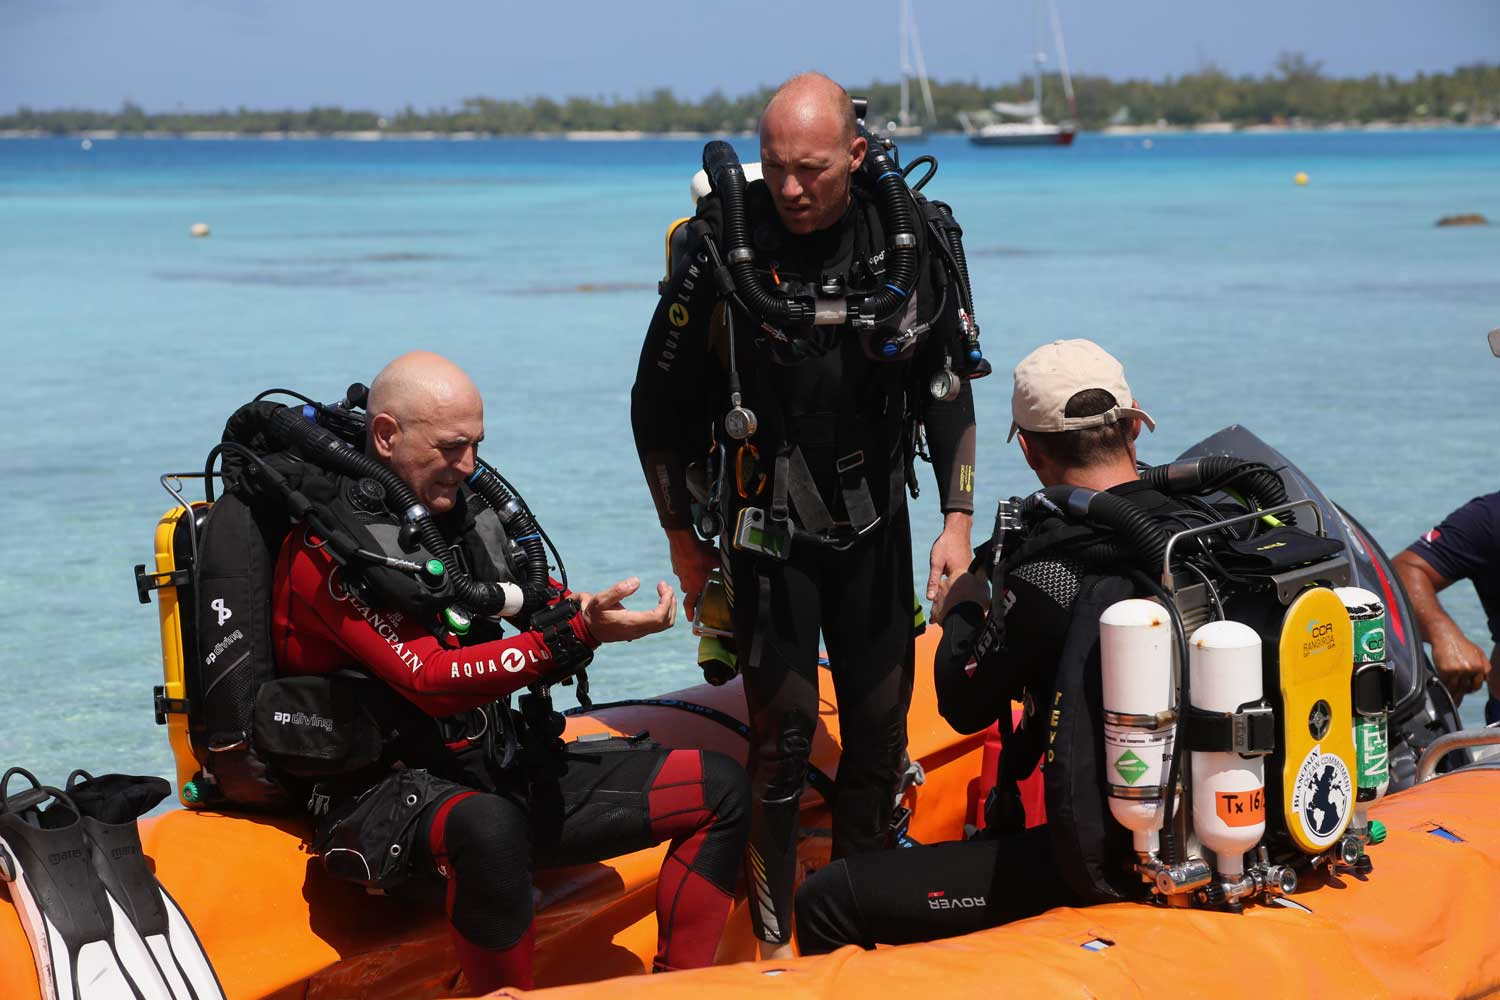 Blancpain President & CEO Marc Hayek on the far left of the frame, an avid diver himself, gearing up to dive with the expedition team from the Mokarran Protection Society in January of 2020